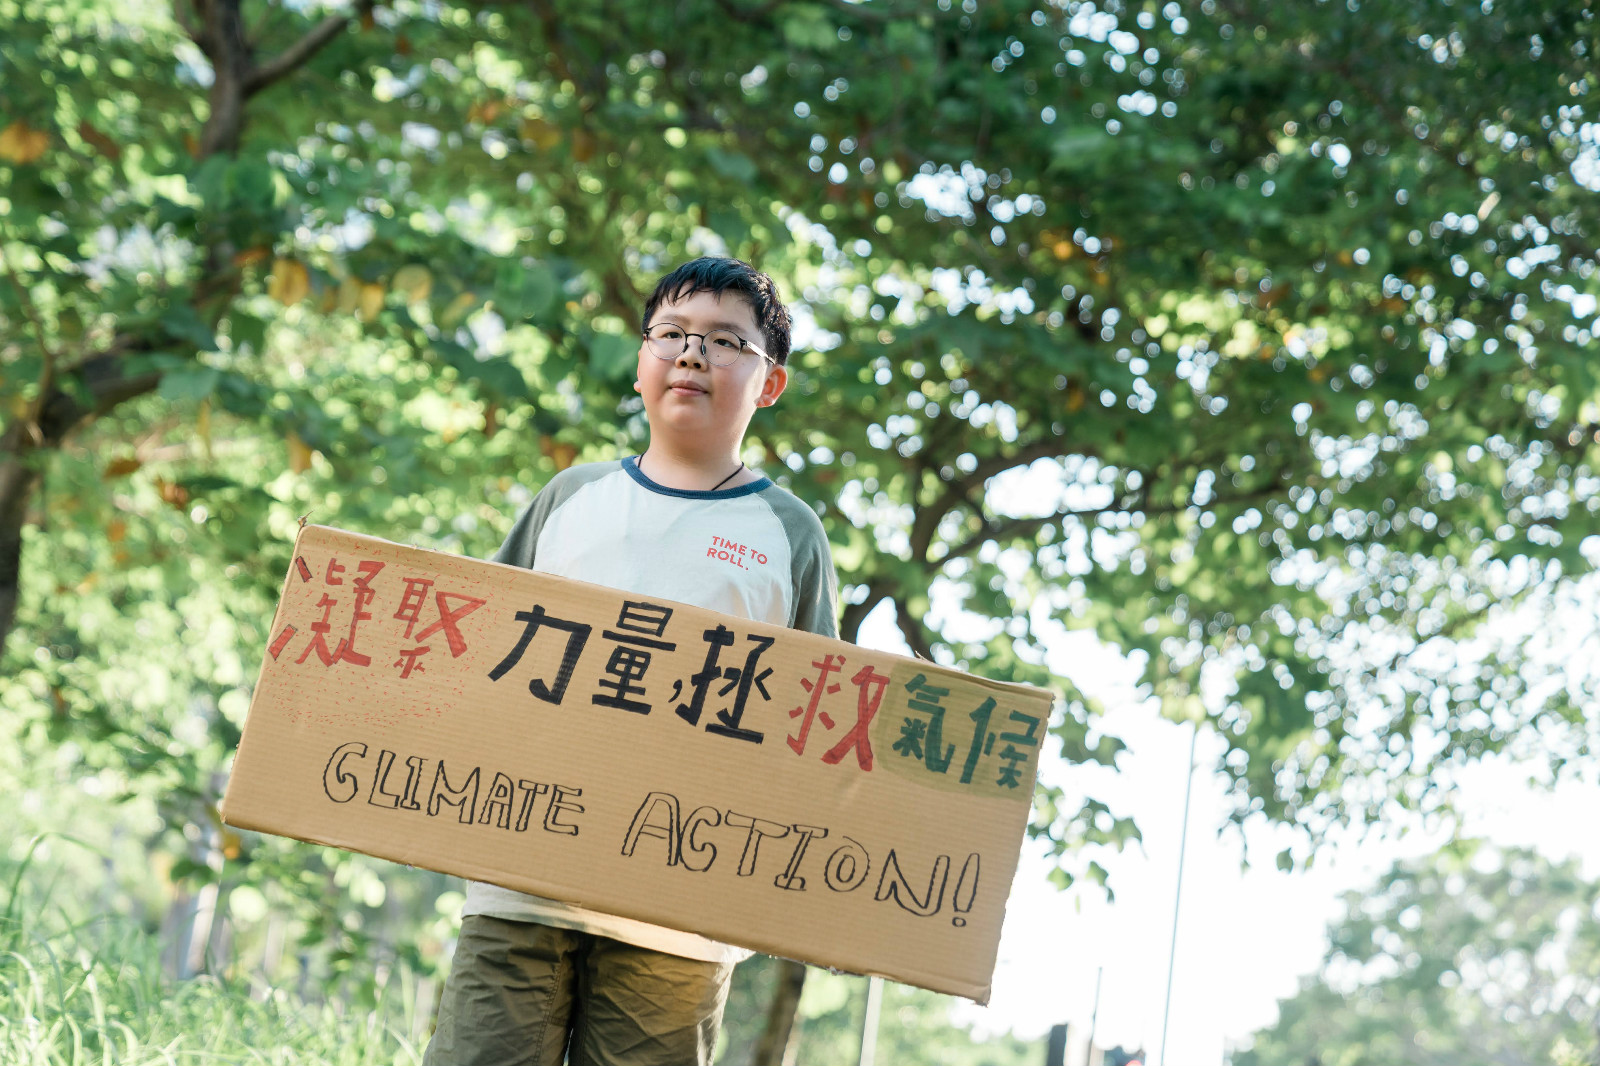 Let's talk about climate change: 11-year-old Lance Lau commits to Climate Action!